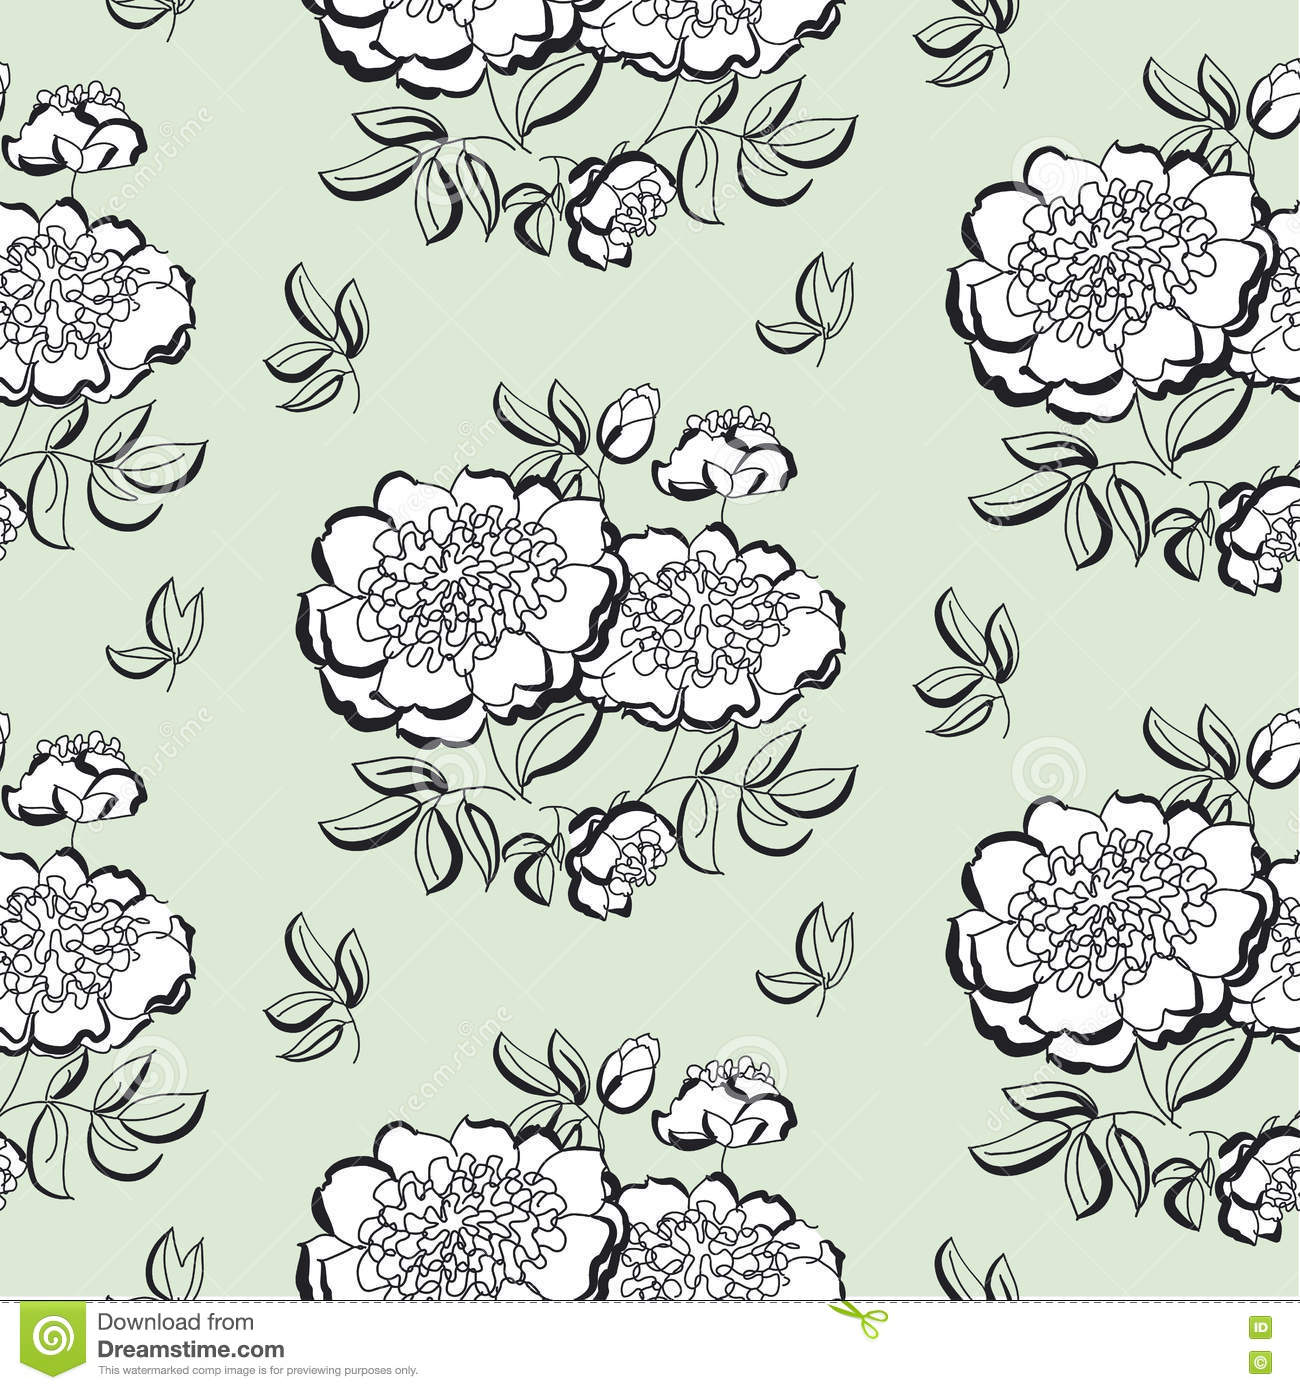 White Peony Floral Sketch Spring Flower Vector Illustration Black And Hand Drawn Seamless Pattern Pastel Color Flowing Tile Motif